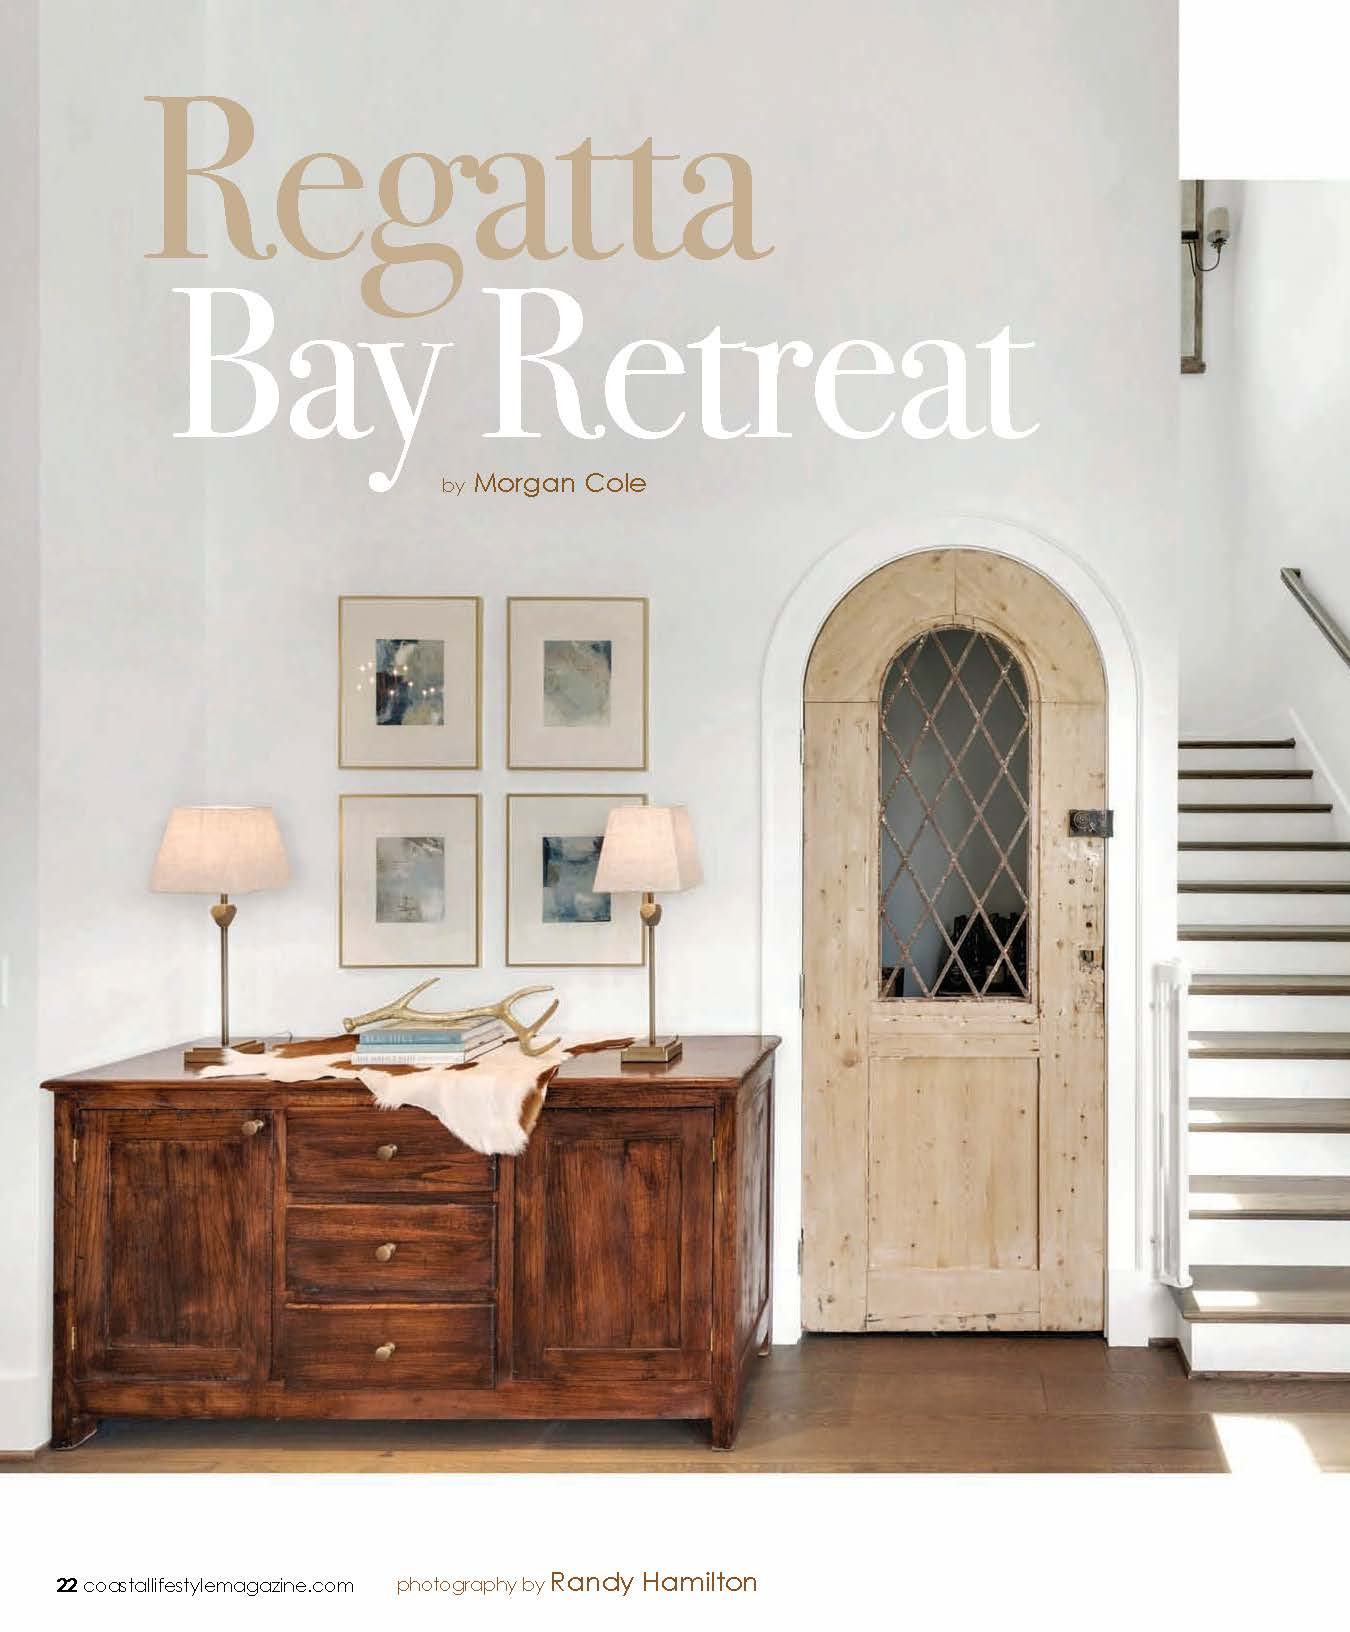 Regatta Bay Retreat